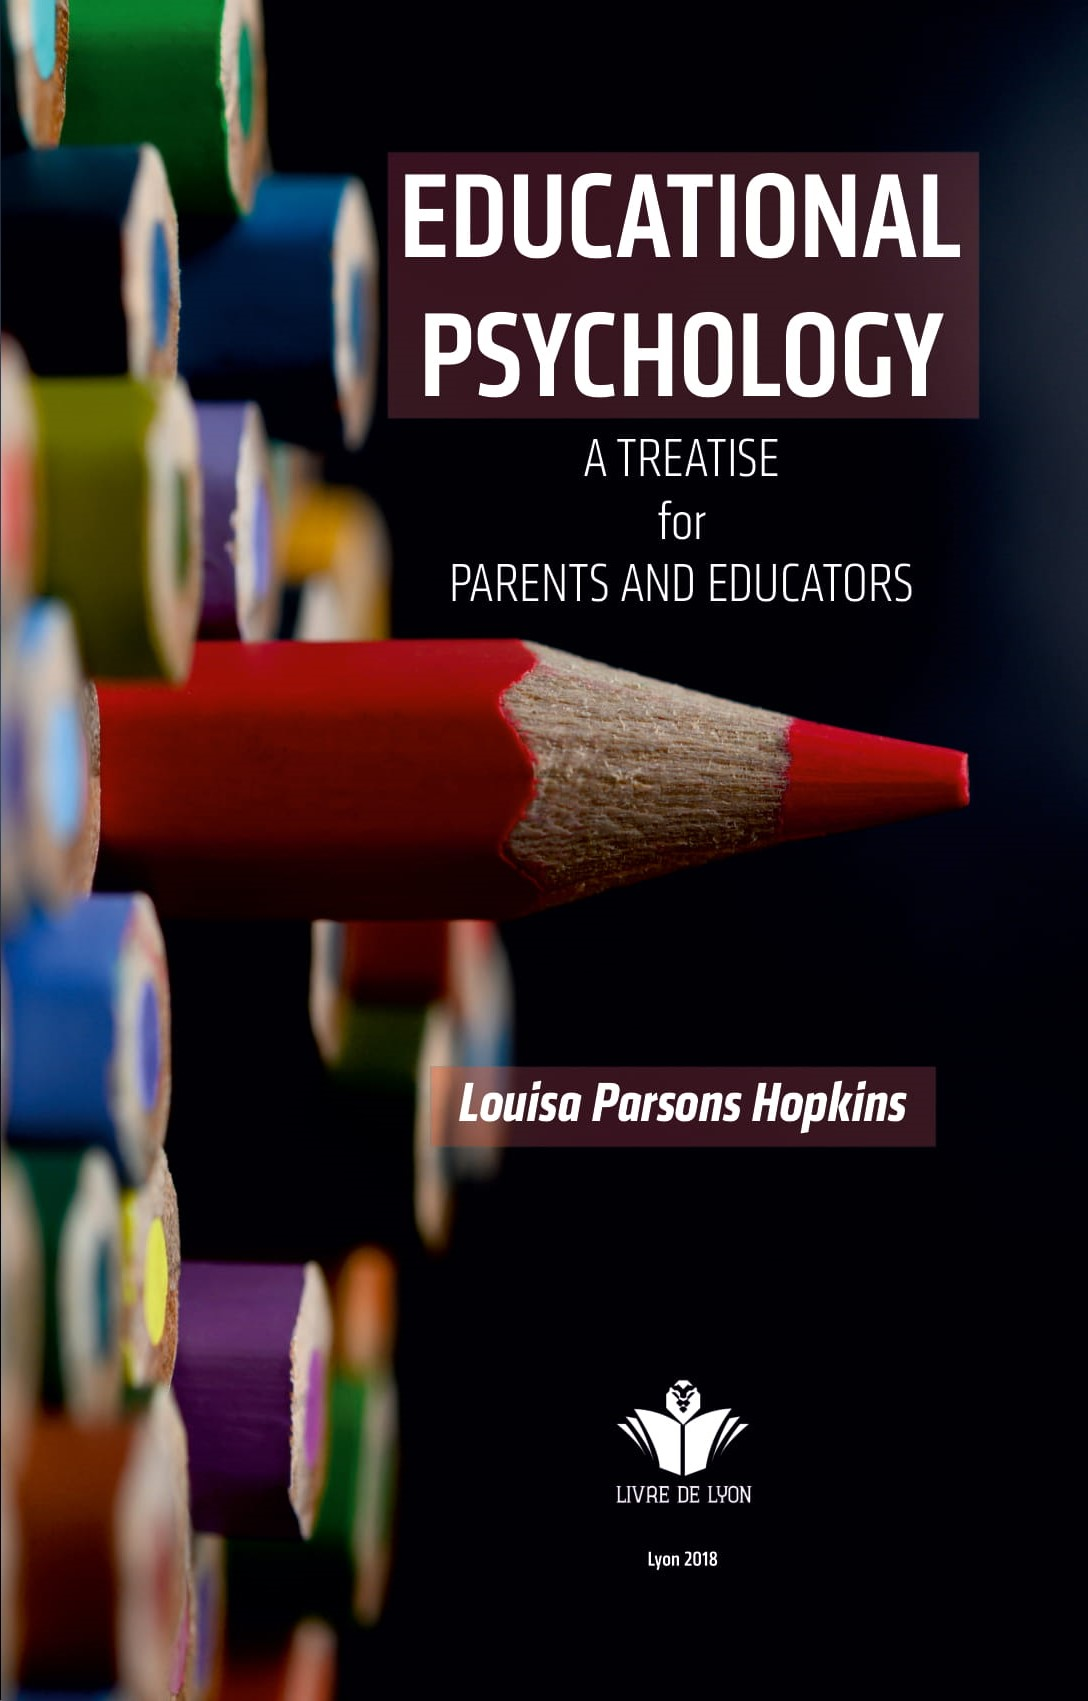 Educational Psychology A Treatise for Parents and Educators